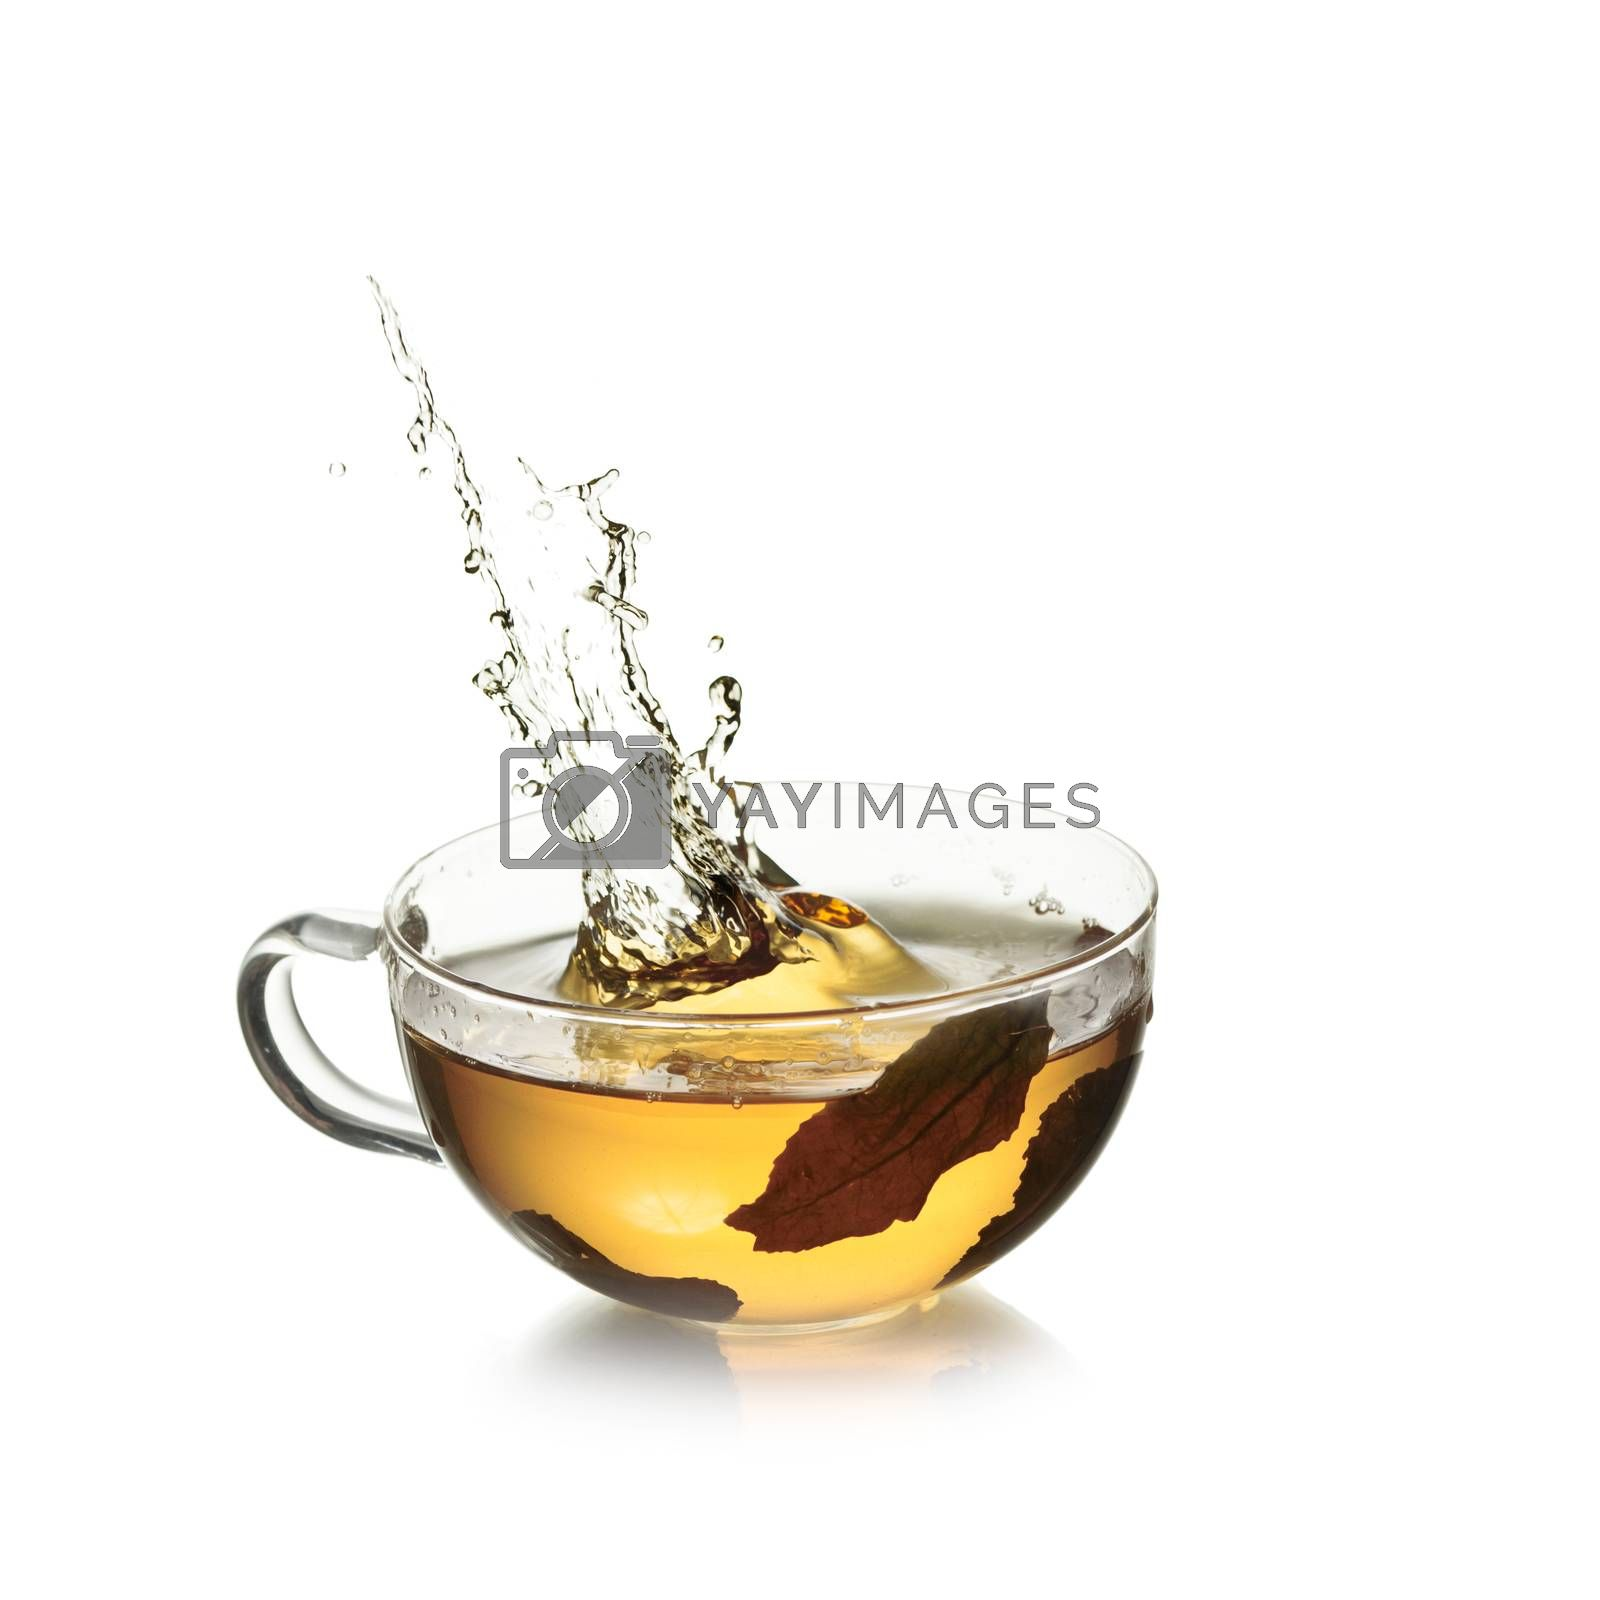 Royalty free image of Tea splash by maxsol